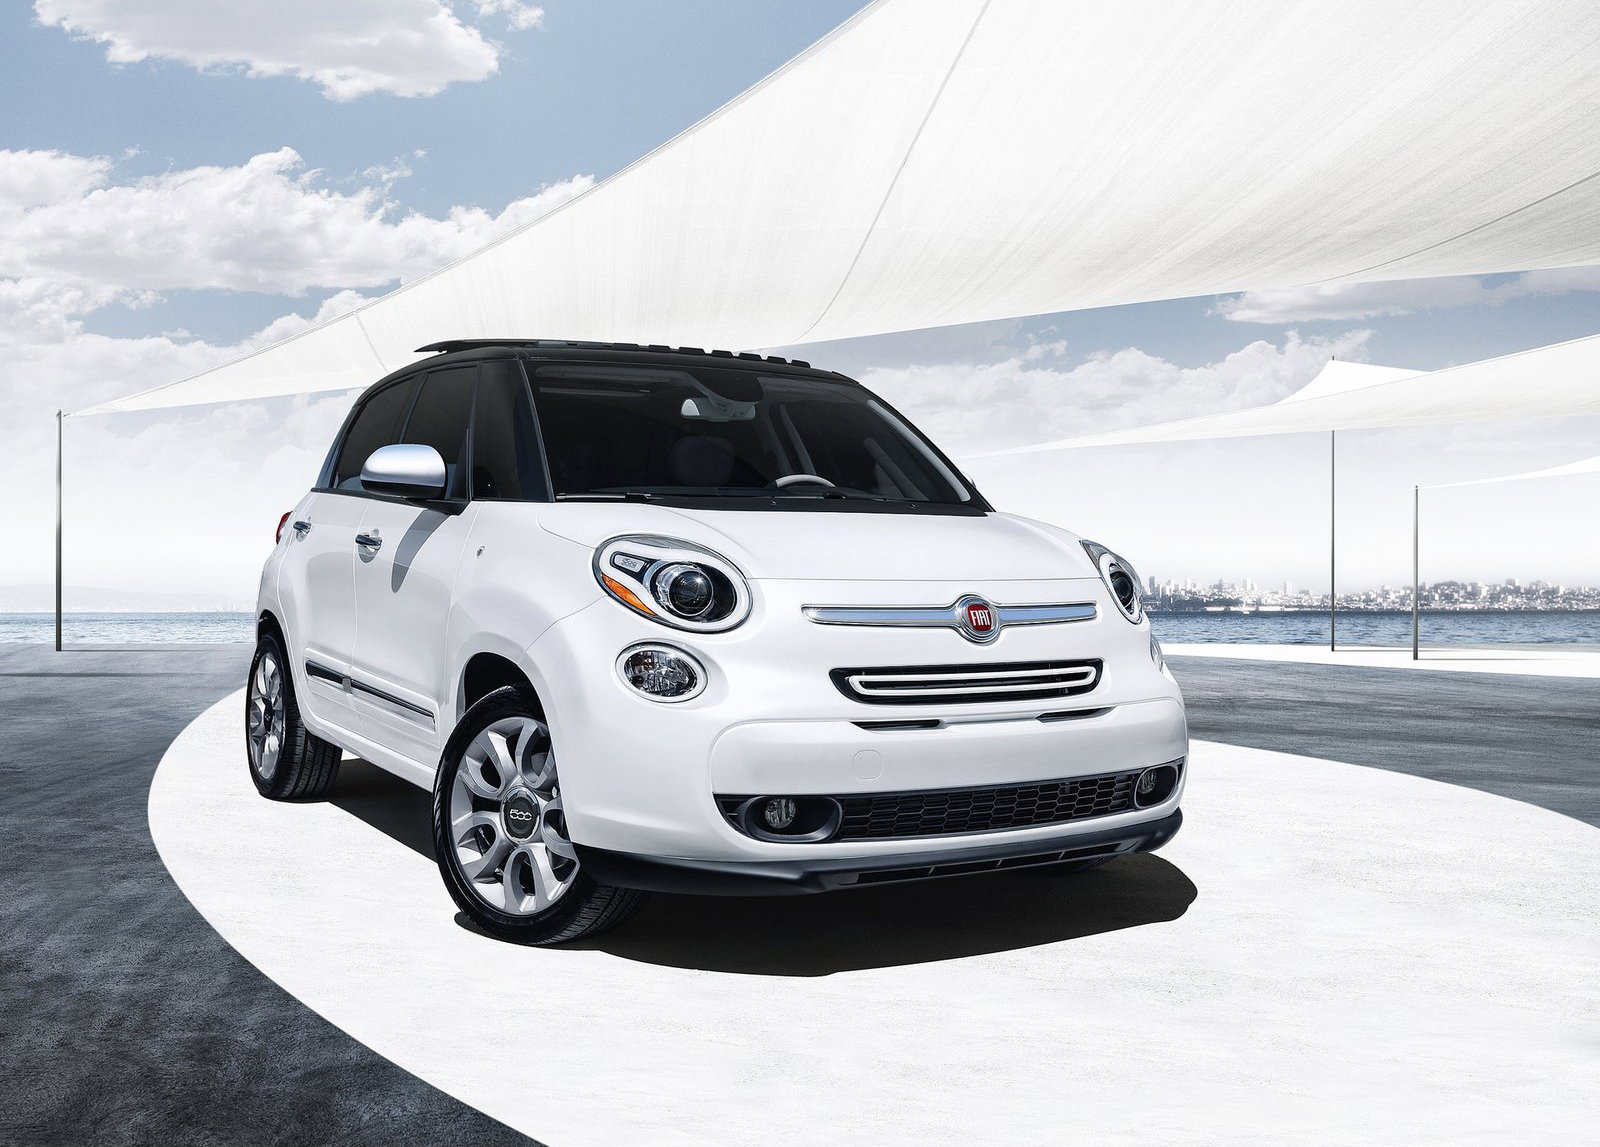 fiat recalls 500l over knee airbags deployment issues autoevolution. Black Bedroom Furniture Sets. Home Design Ideas